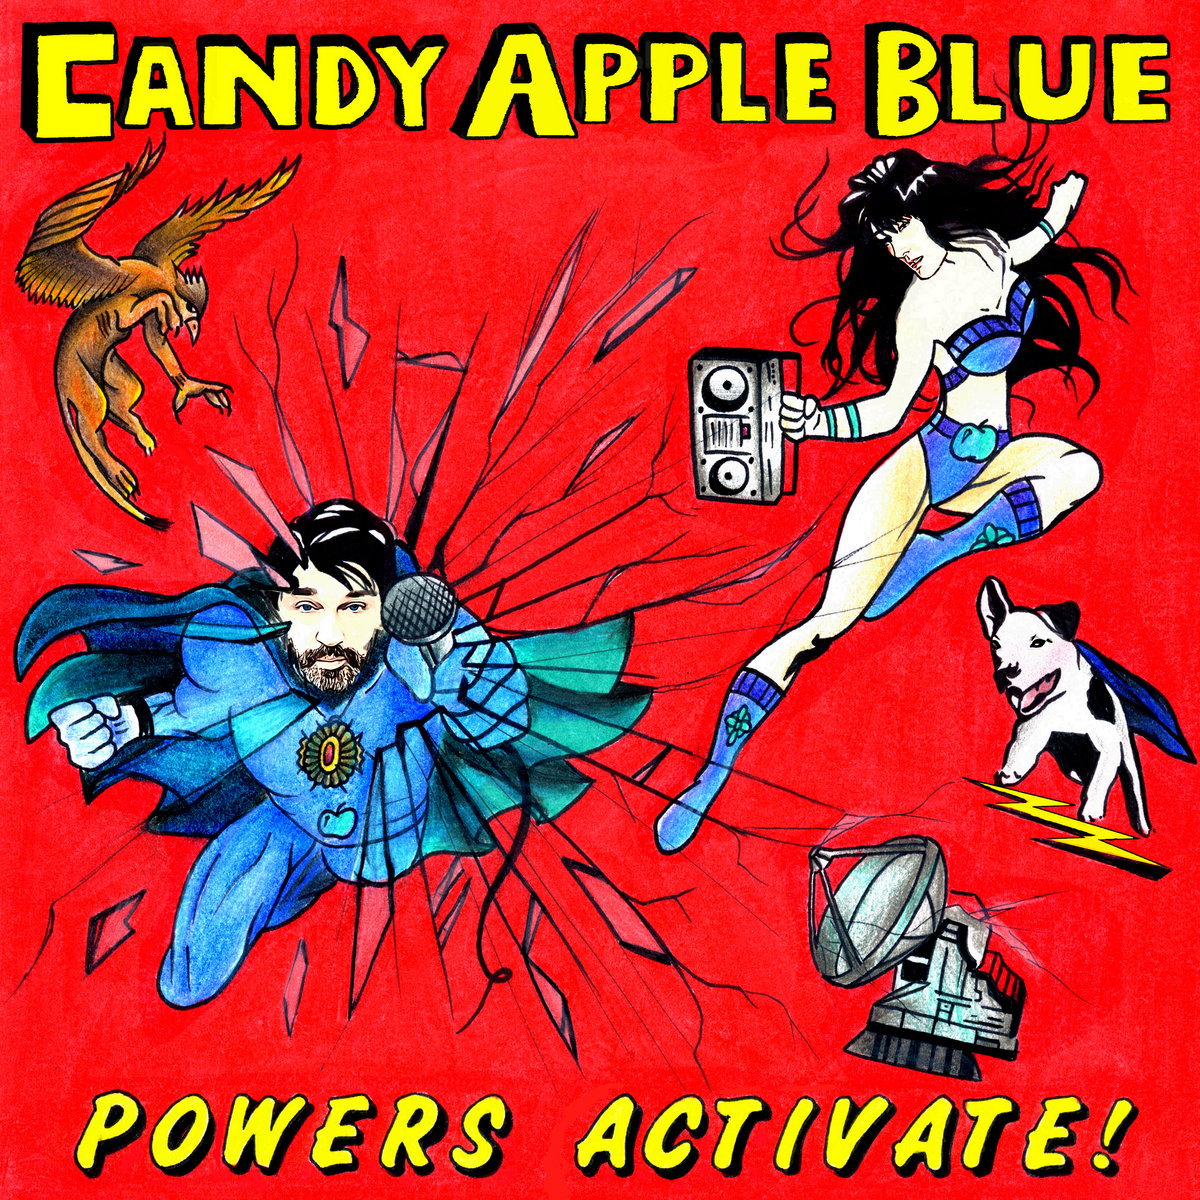 Powers Activate!   Candy Apple Blue